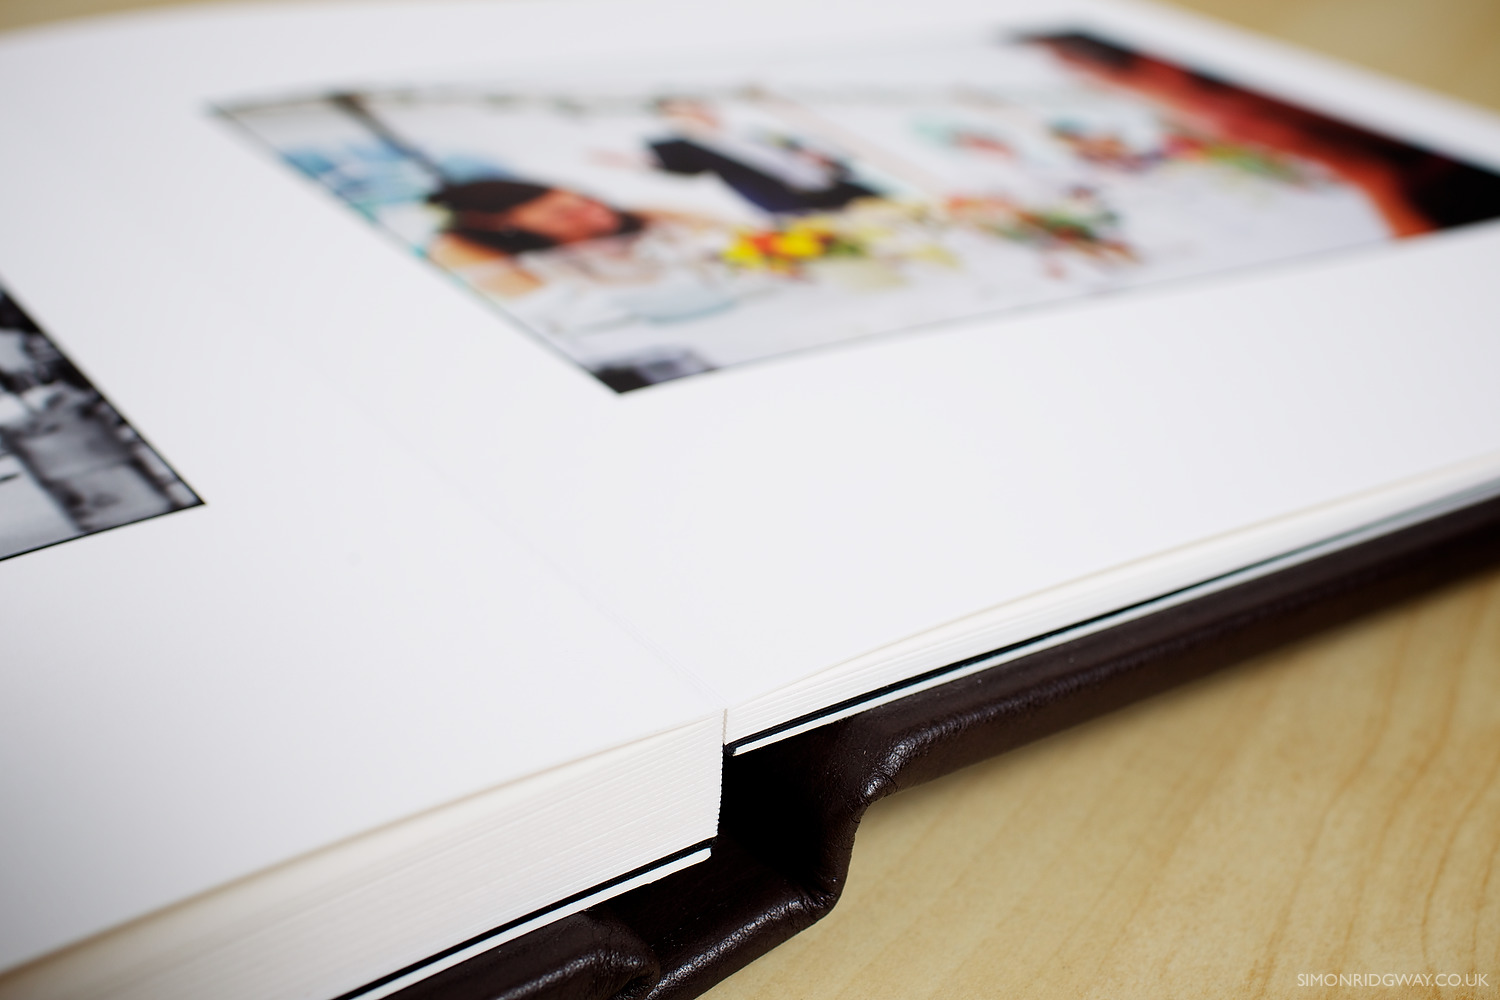 Each page consists of two paper pages glued back to back with a lay-flat binding